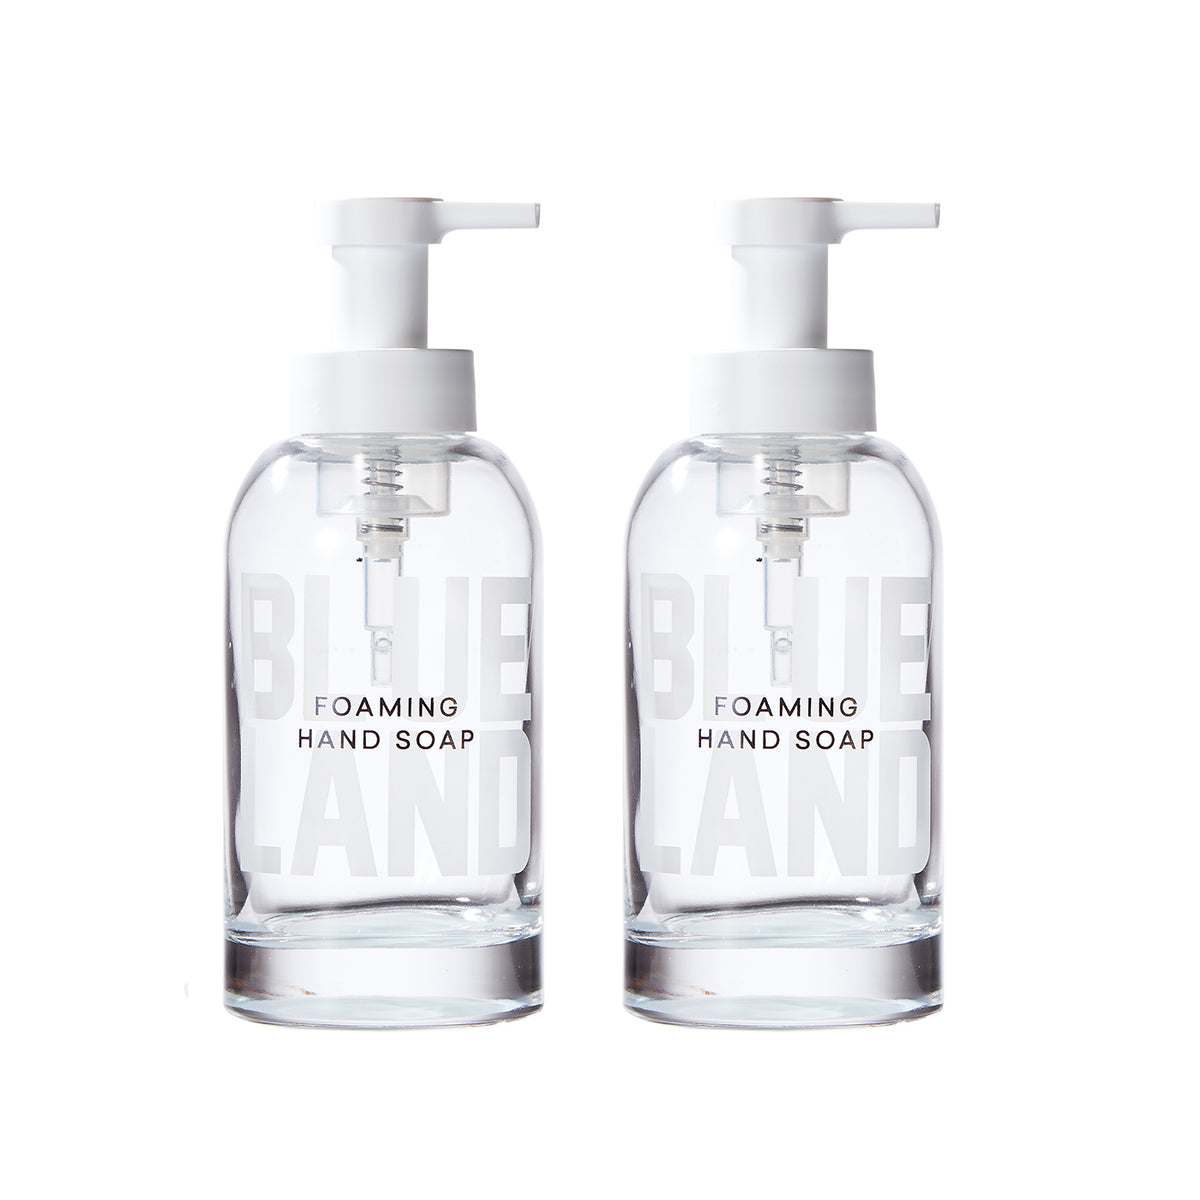 Two reusable glass foaming hand soap bottles on white background